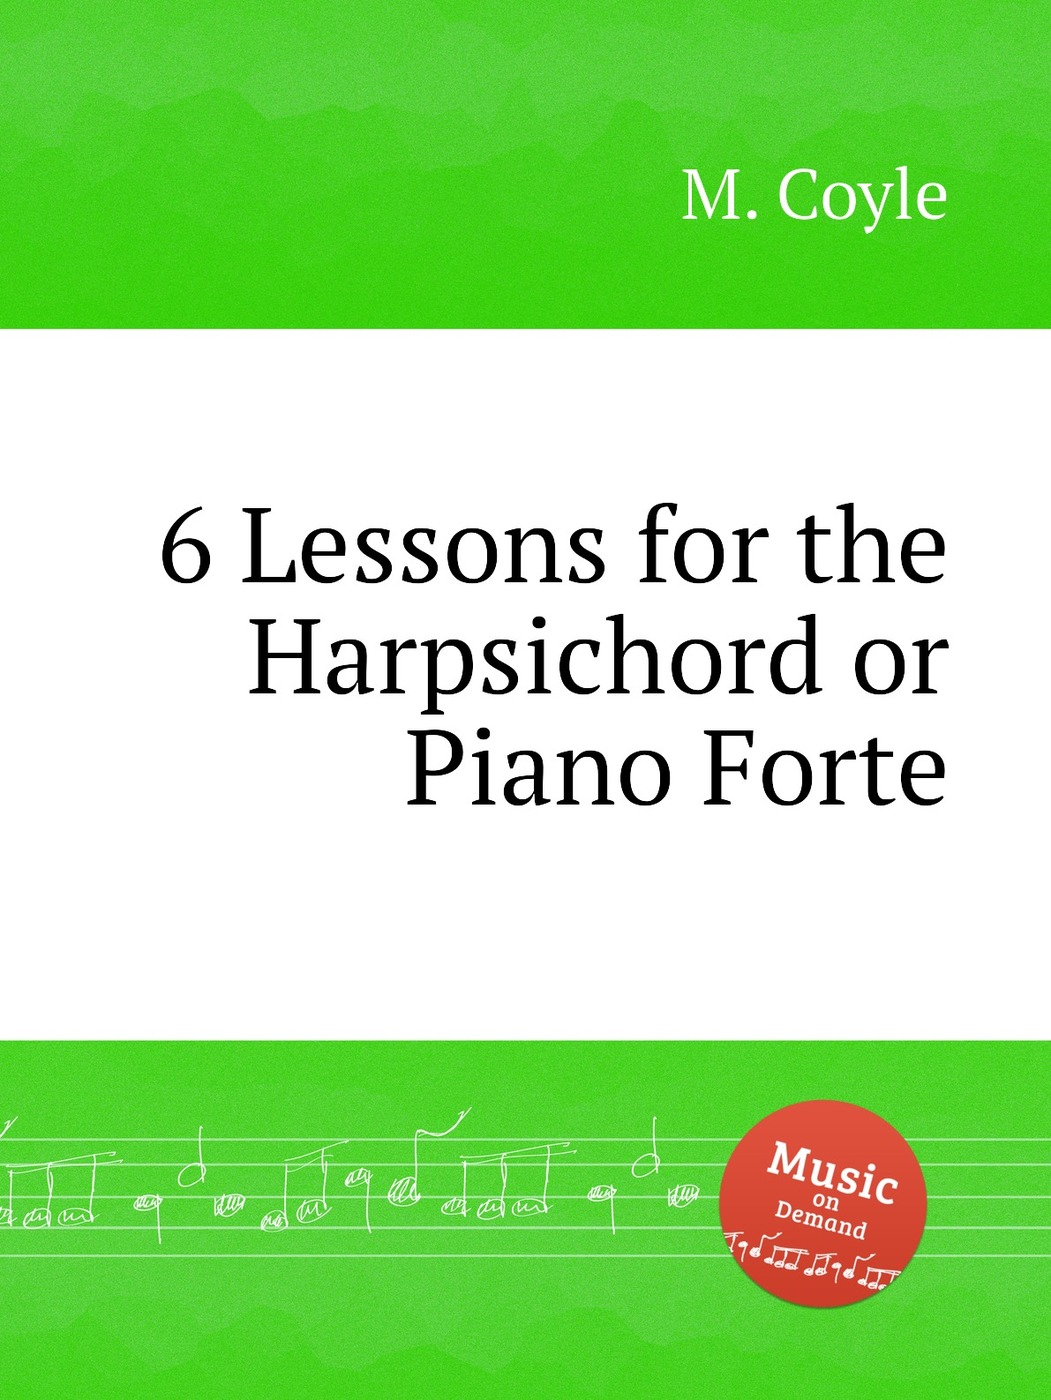 6 Lessons for the Harpsichord or Piano Forte